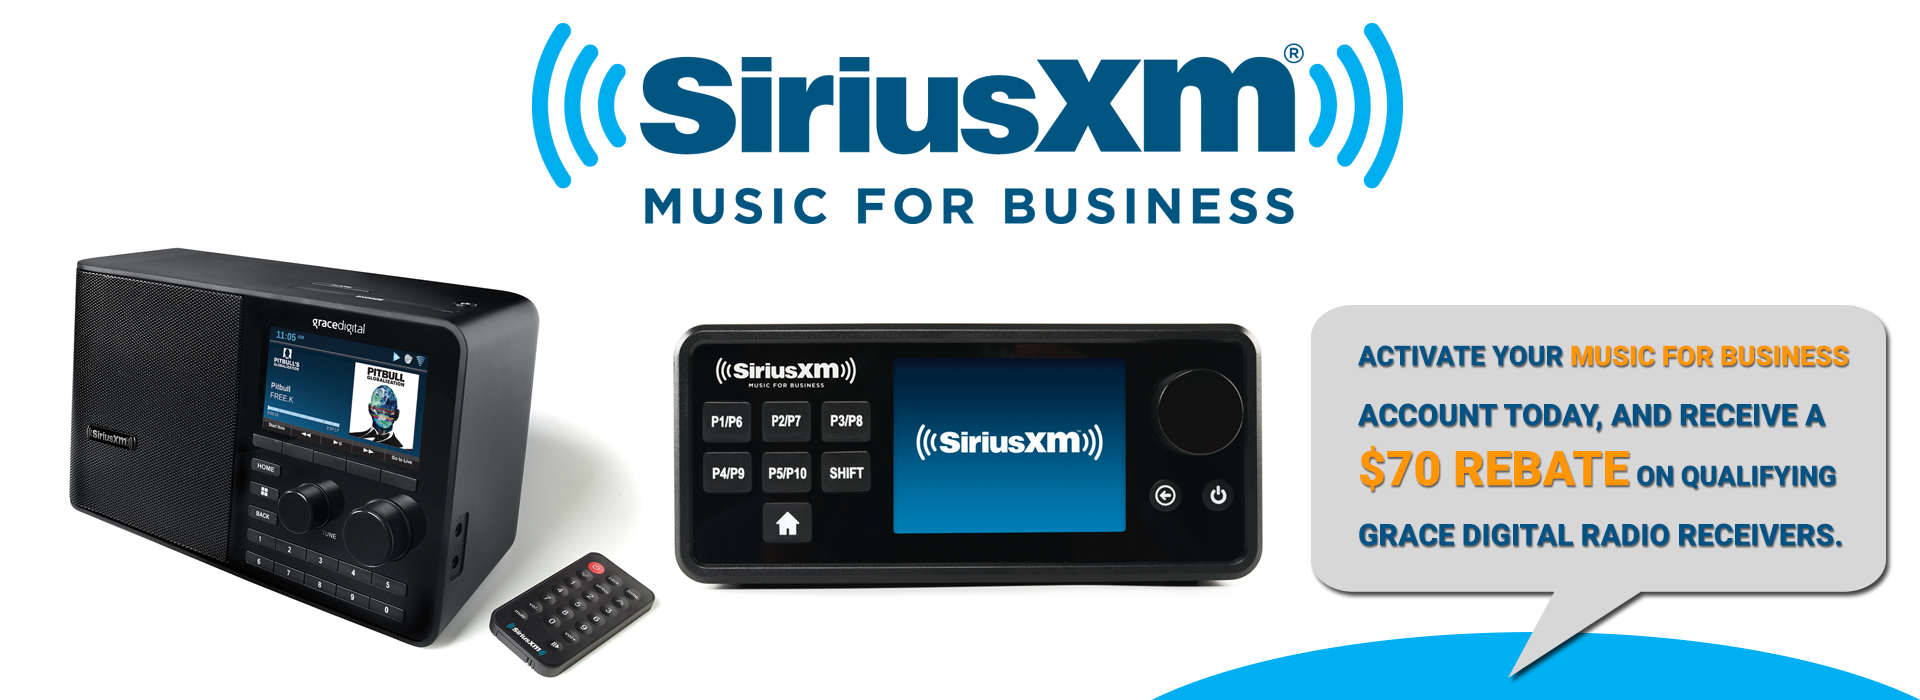 SiriusXM-Music-for-Business-Grace-Digital-Internet-Radios